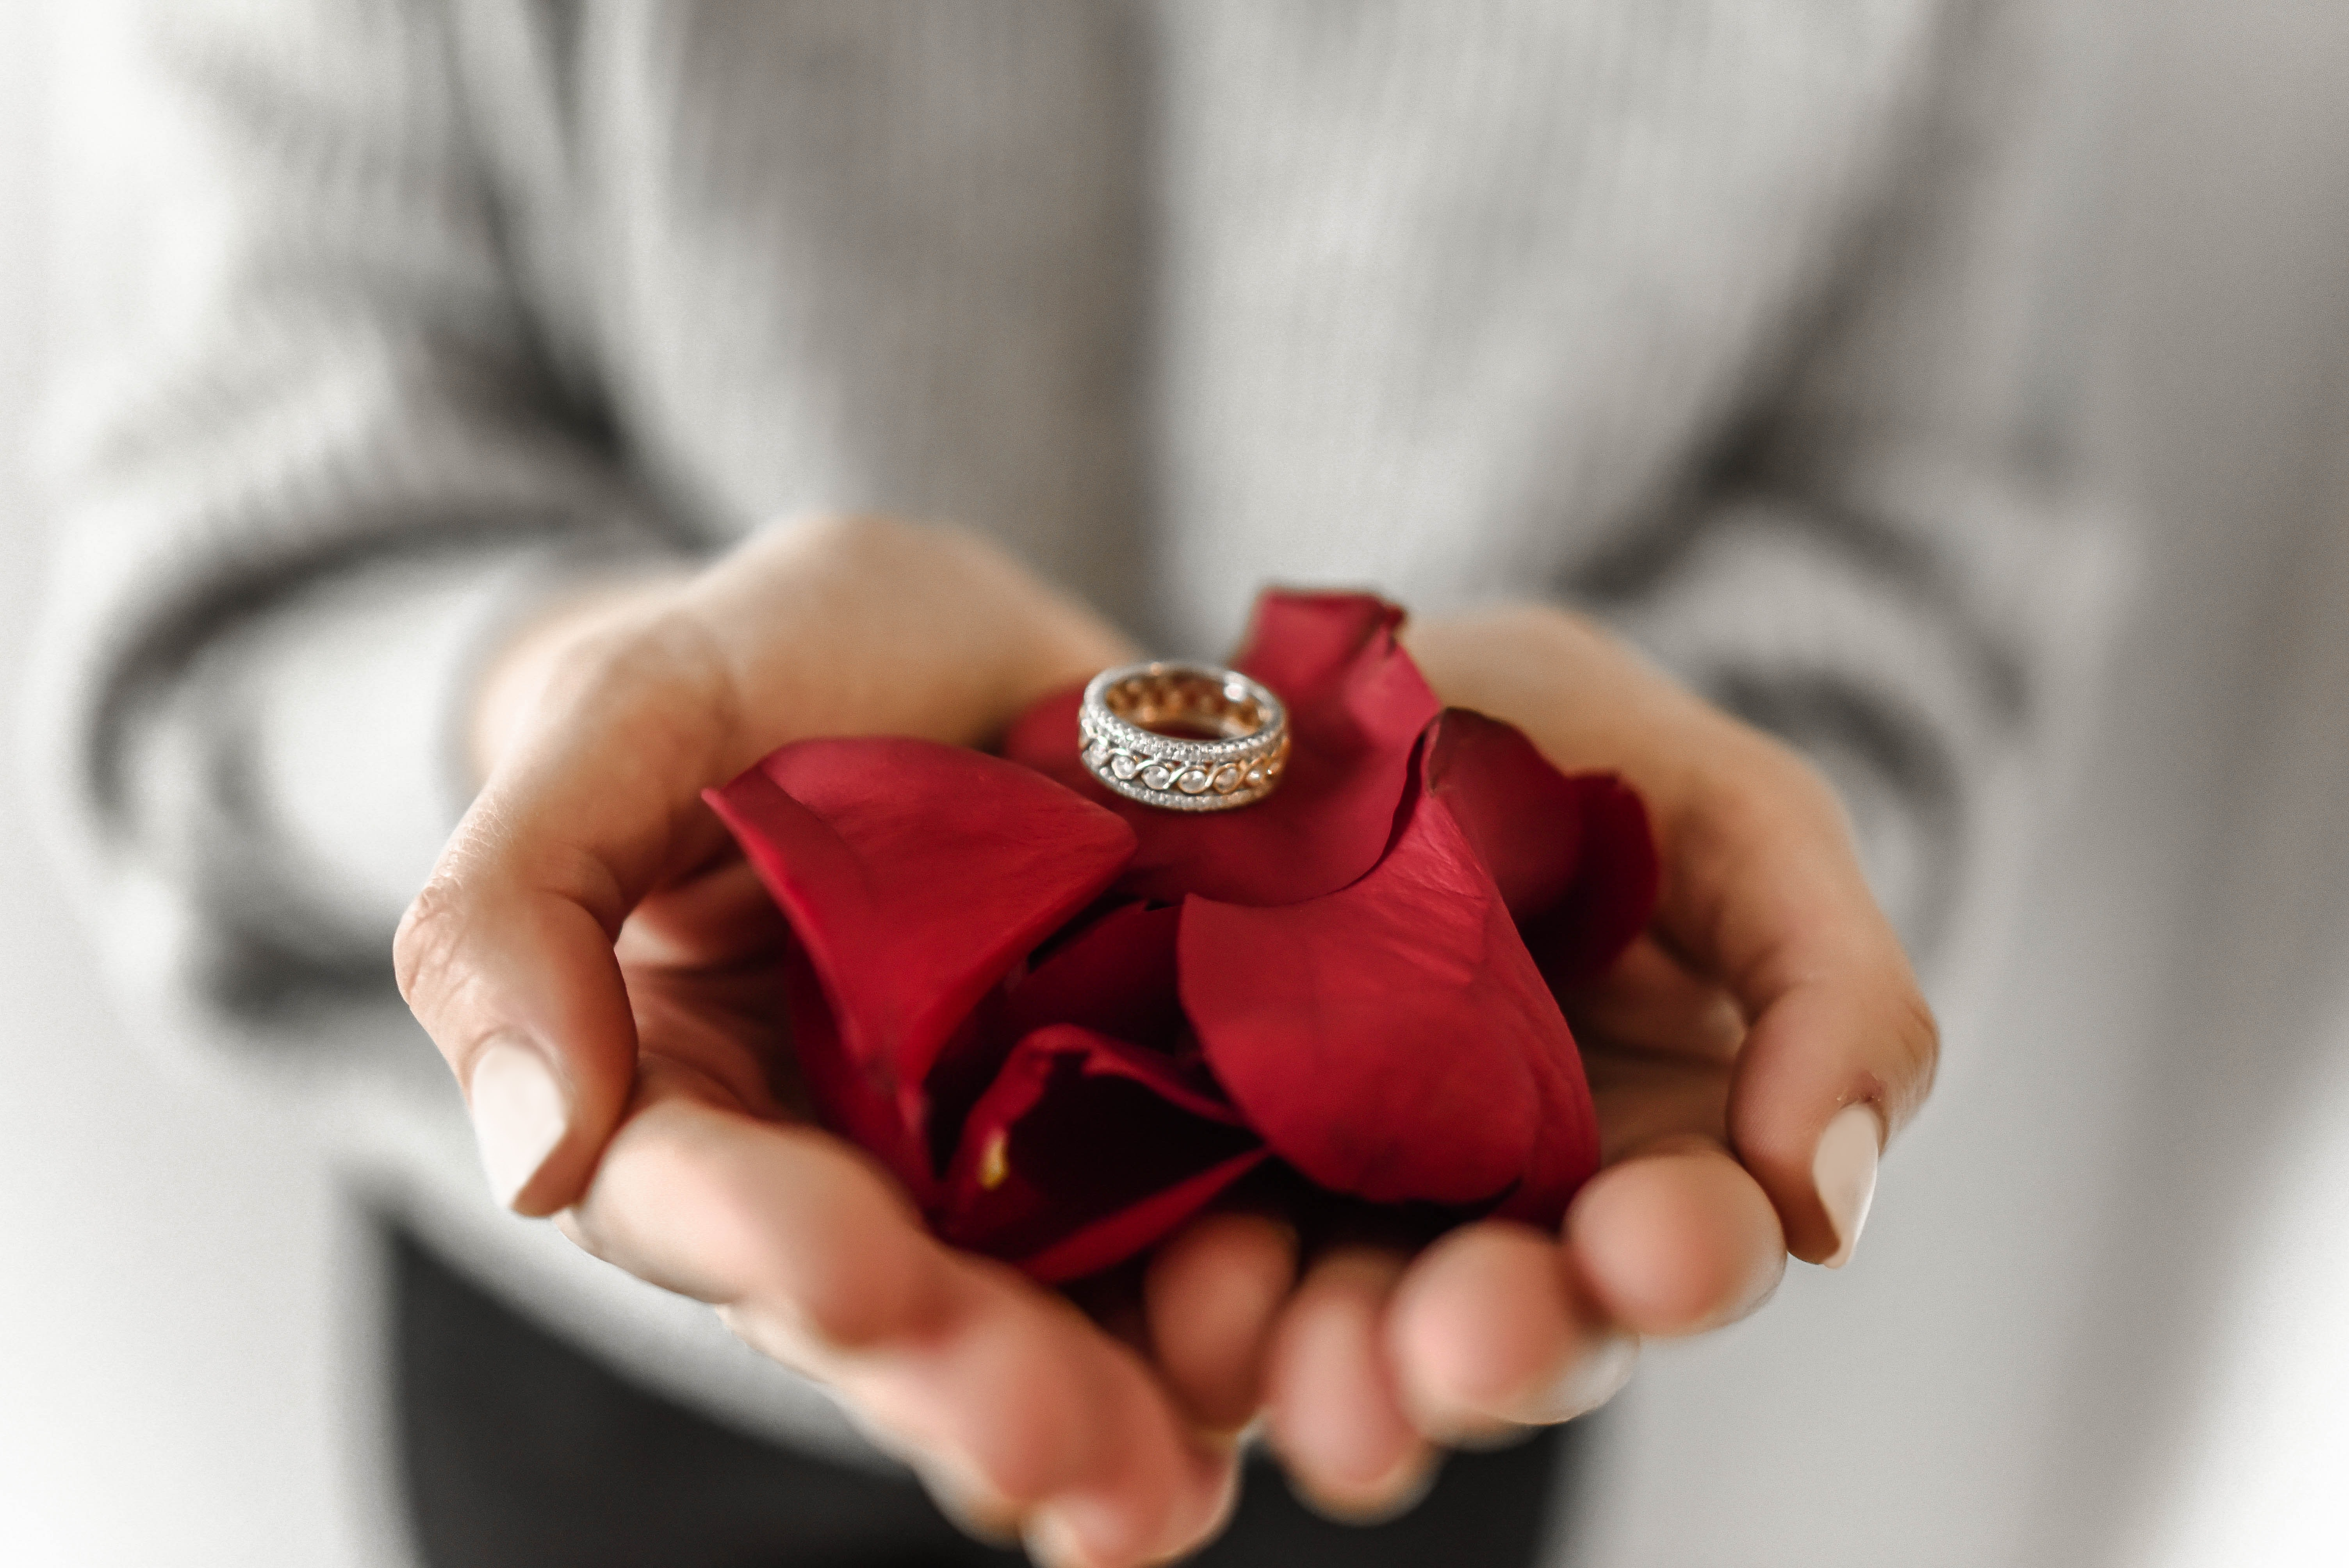 person holding red petaled flower and silver-colored ring